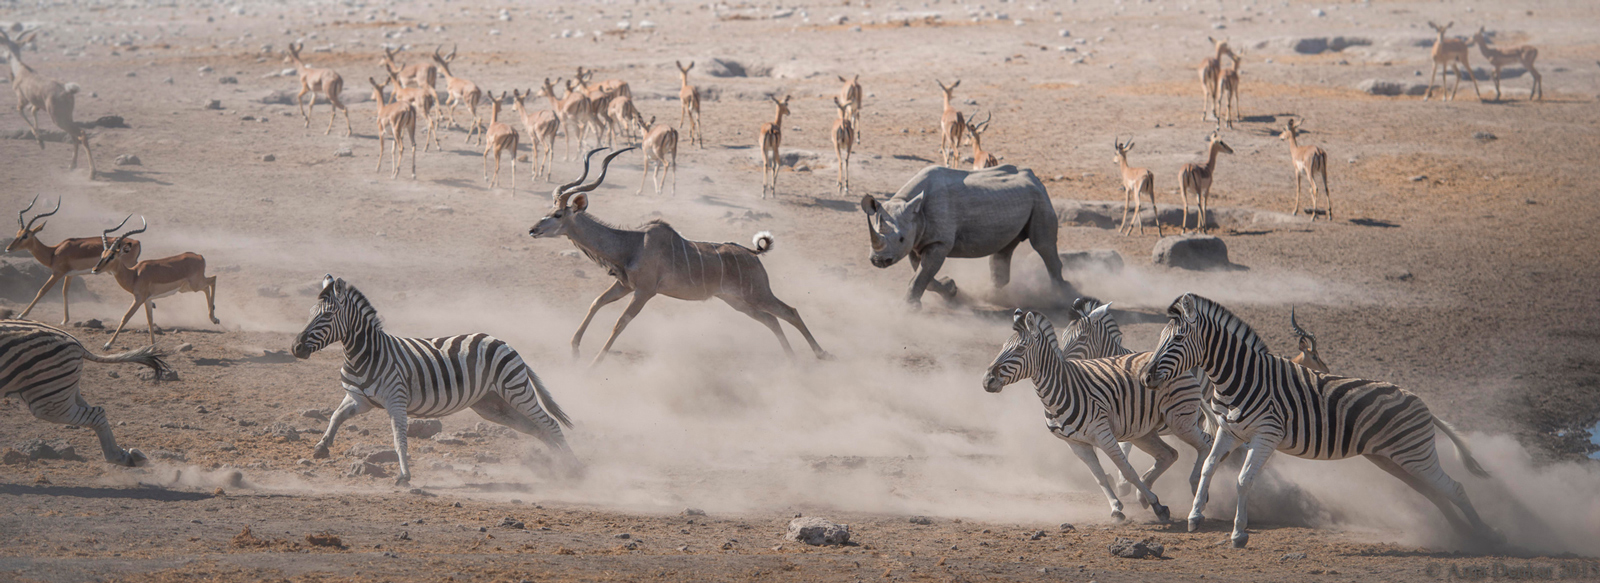 Etosha mayhem-at-the-waterhole-anja-denker